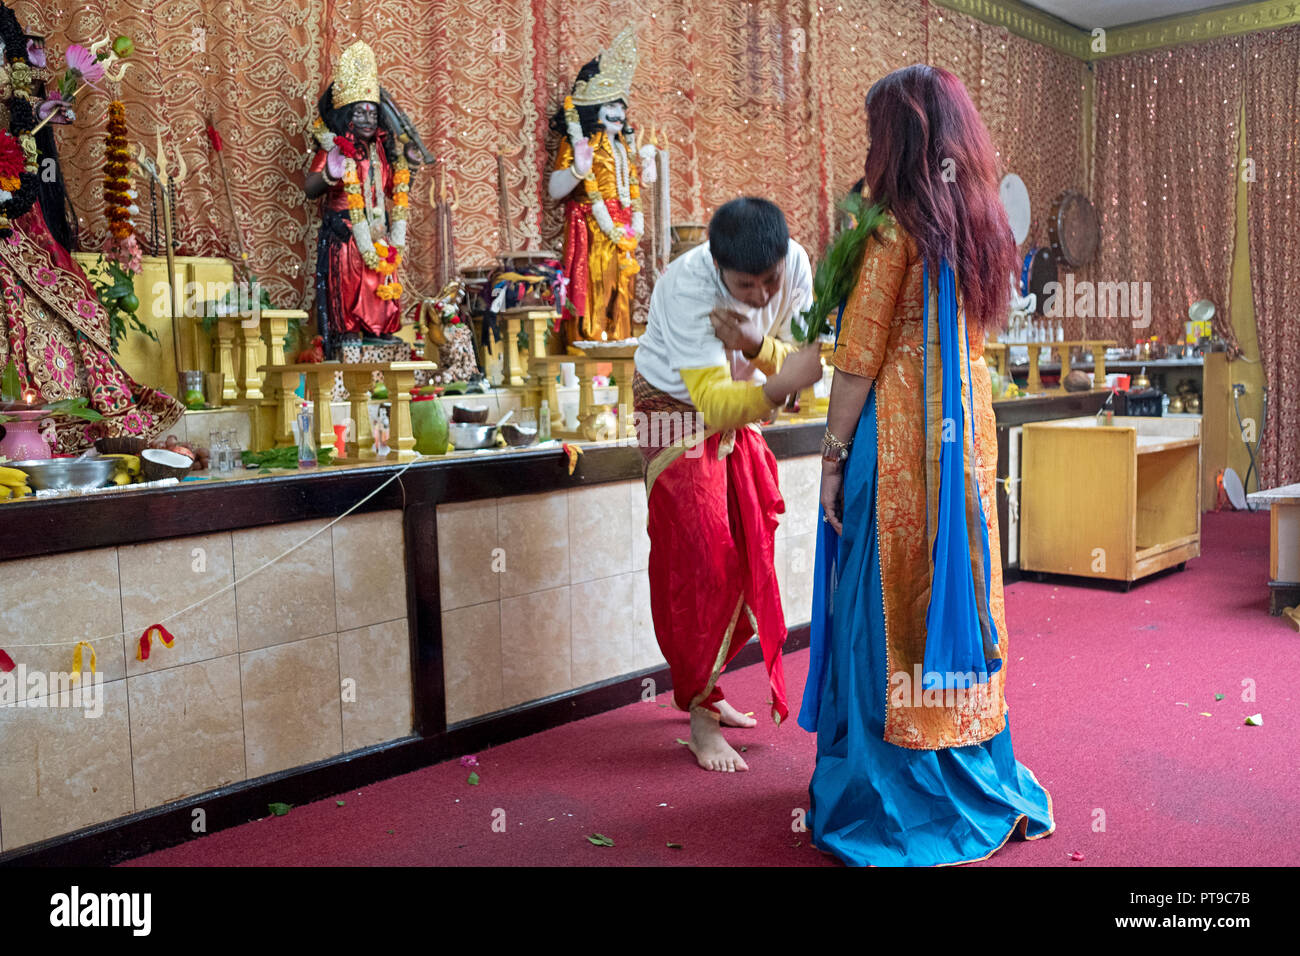 A woman in a beautiful sari gets a personal blessing at a Hindu Mandir (temple) in Richmond Hill, Queens, New York. - Stock Image